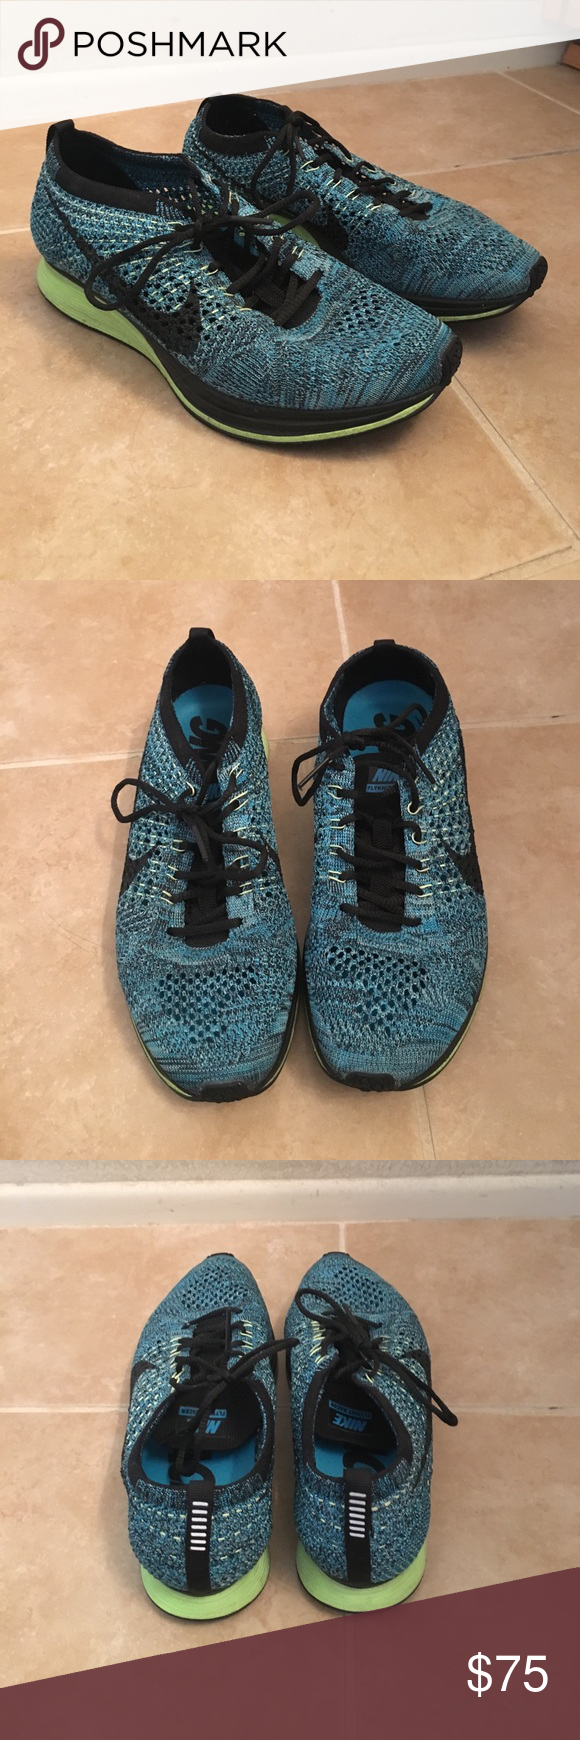 Nike flyknit racer Men's size 5.5 will fit a women's size 7. Great condition. Barely worn. Ships without box. Will accept reasonable offers. Nike Shoes Athletic Shoes